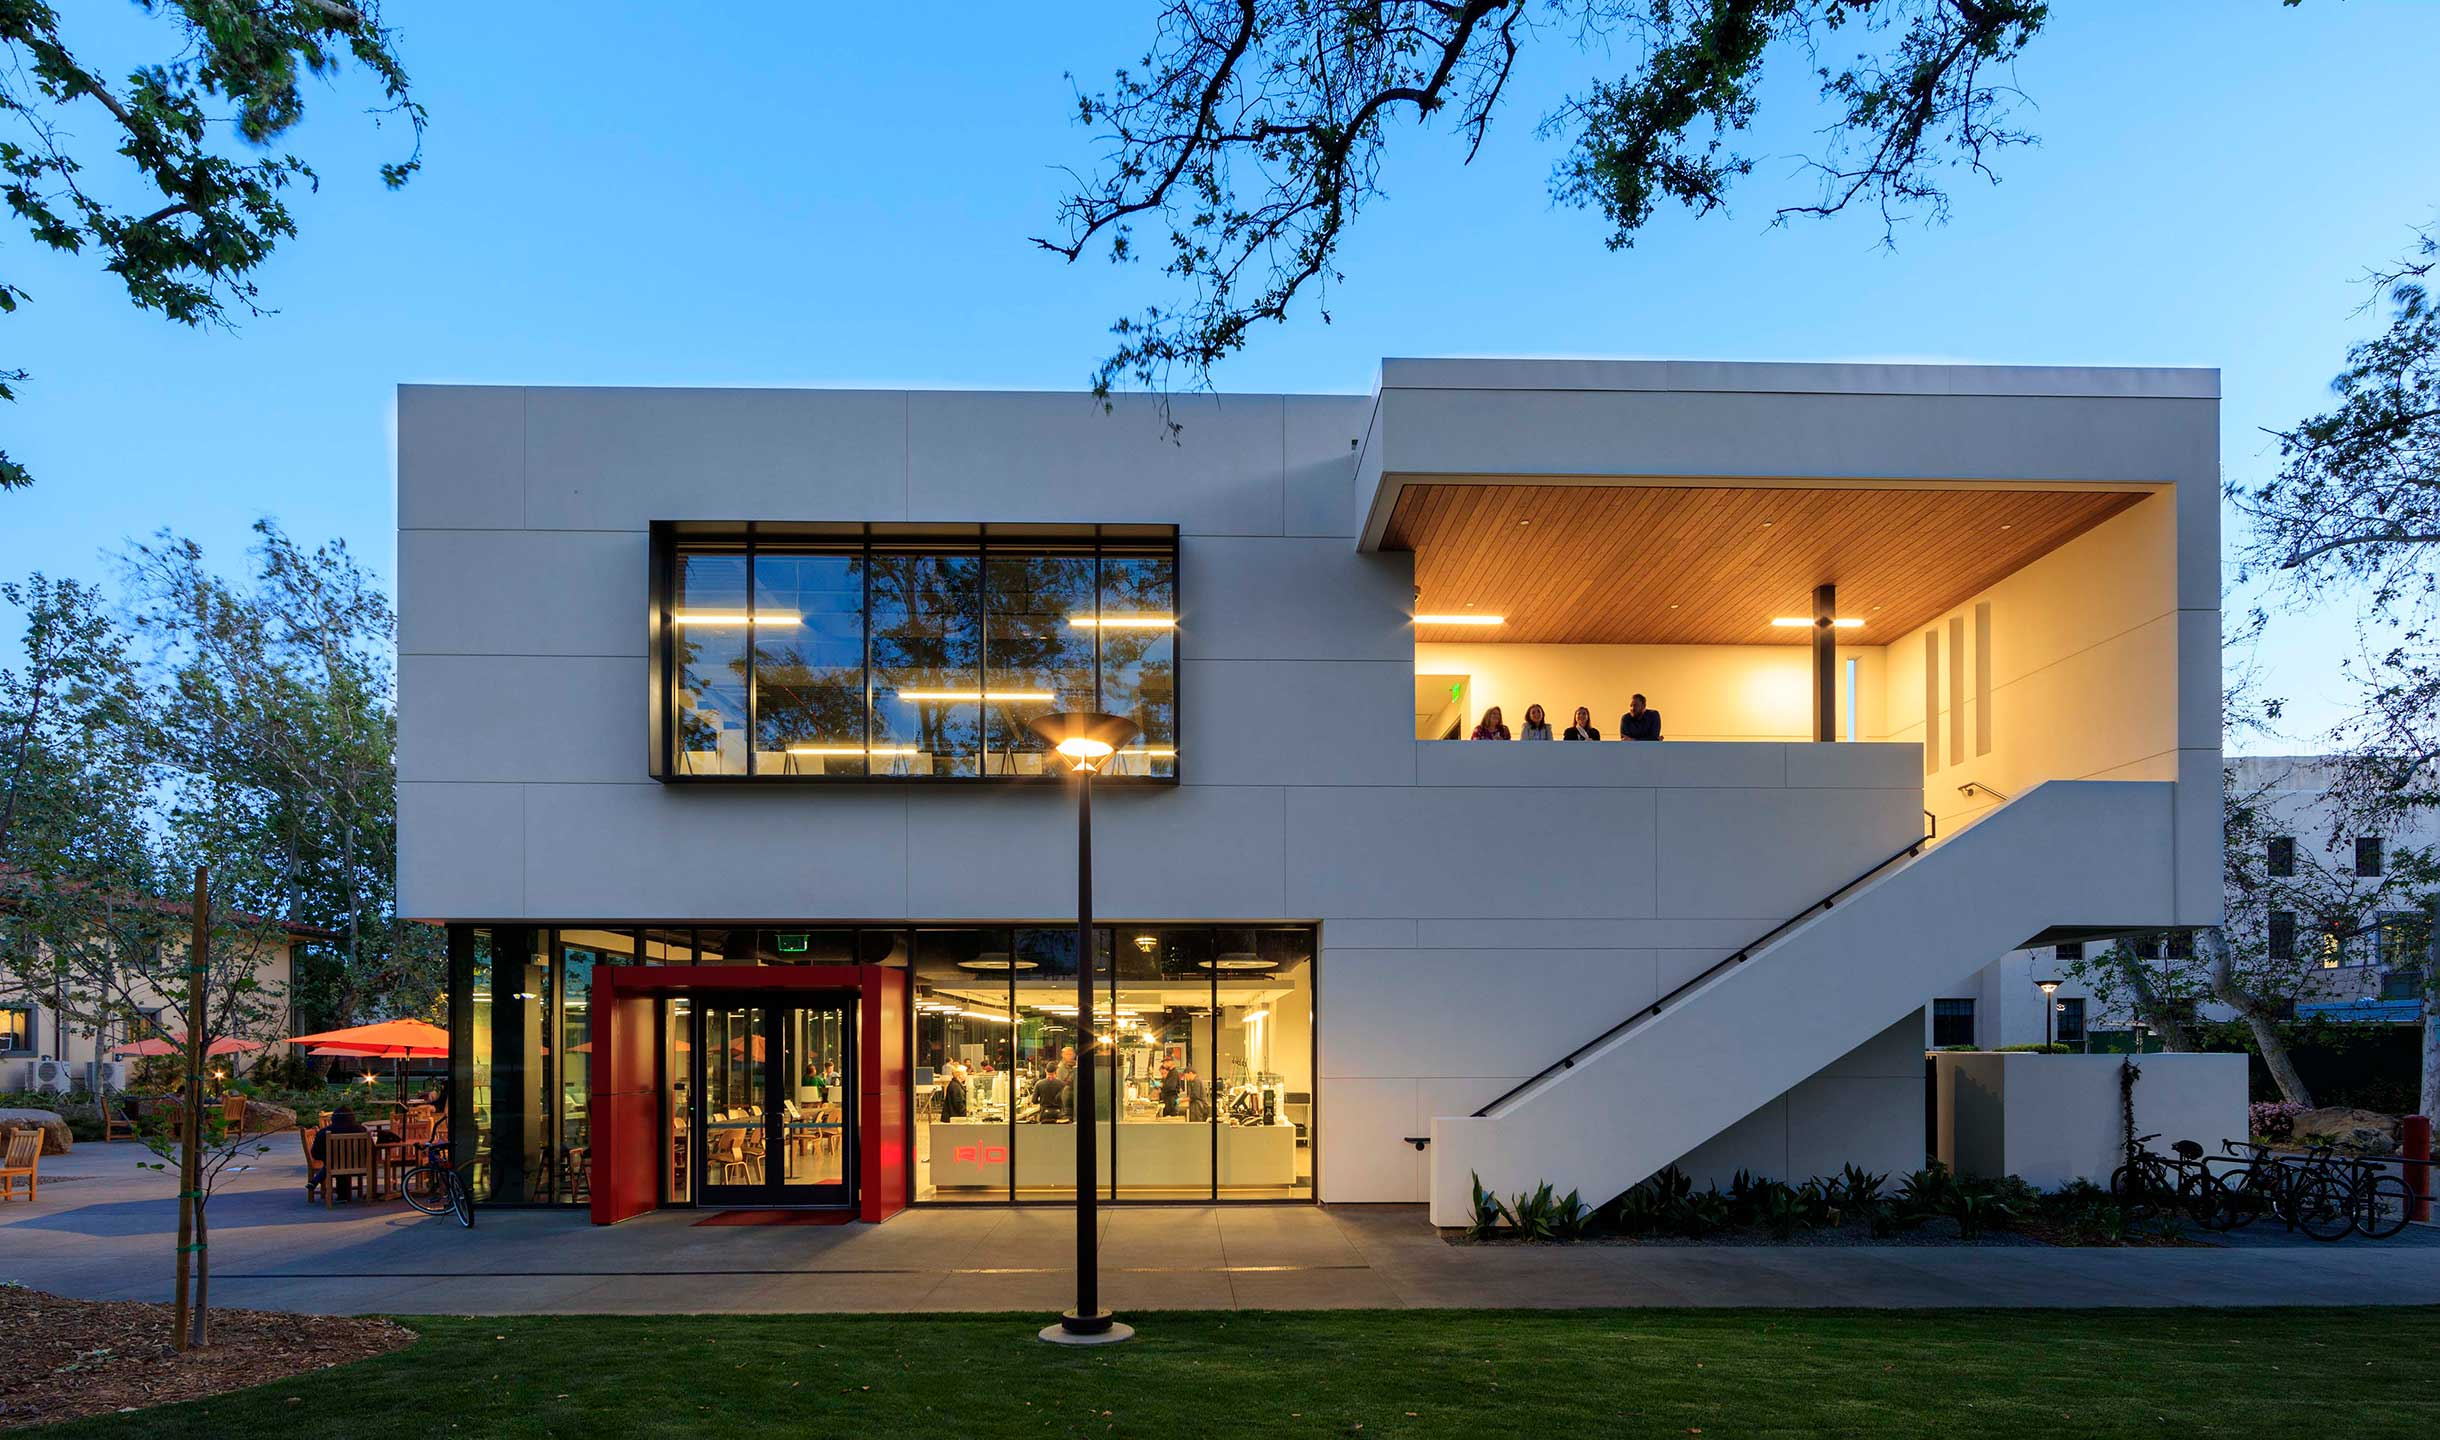 Hameetman Student Center designed by GGA Architects